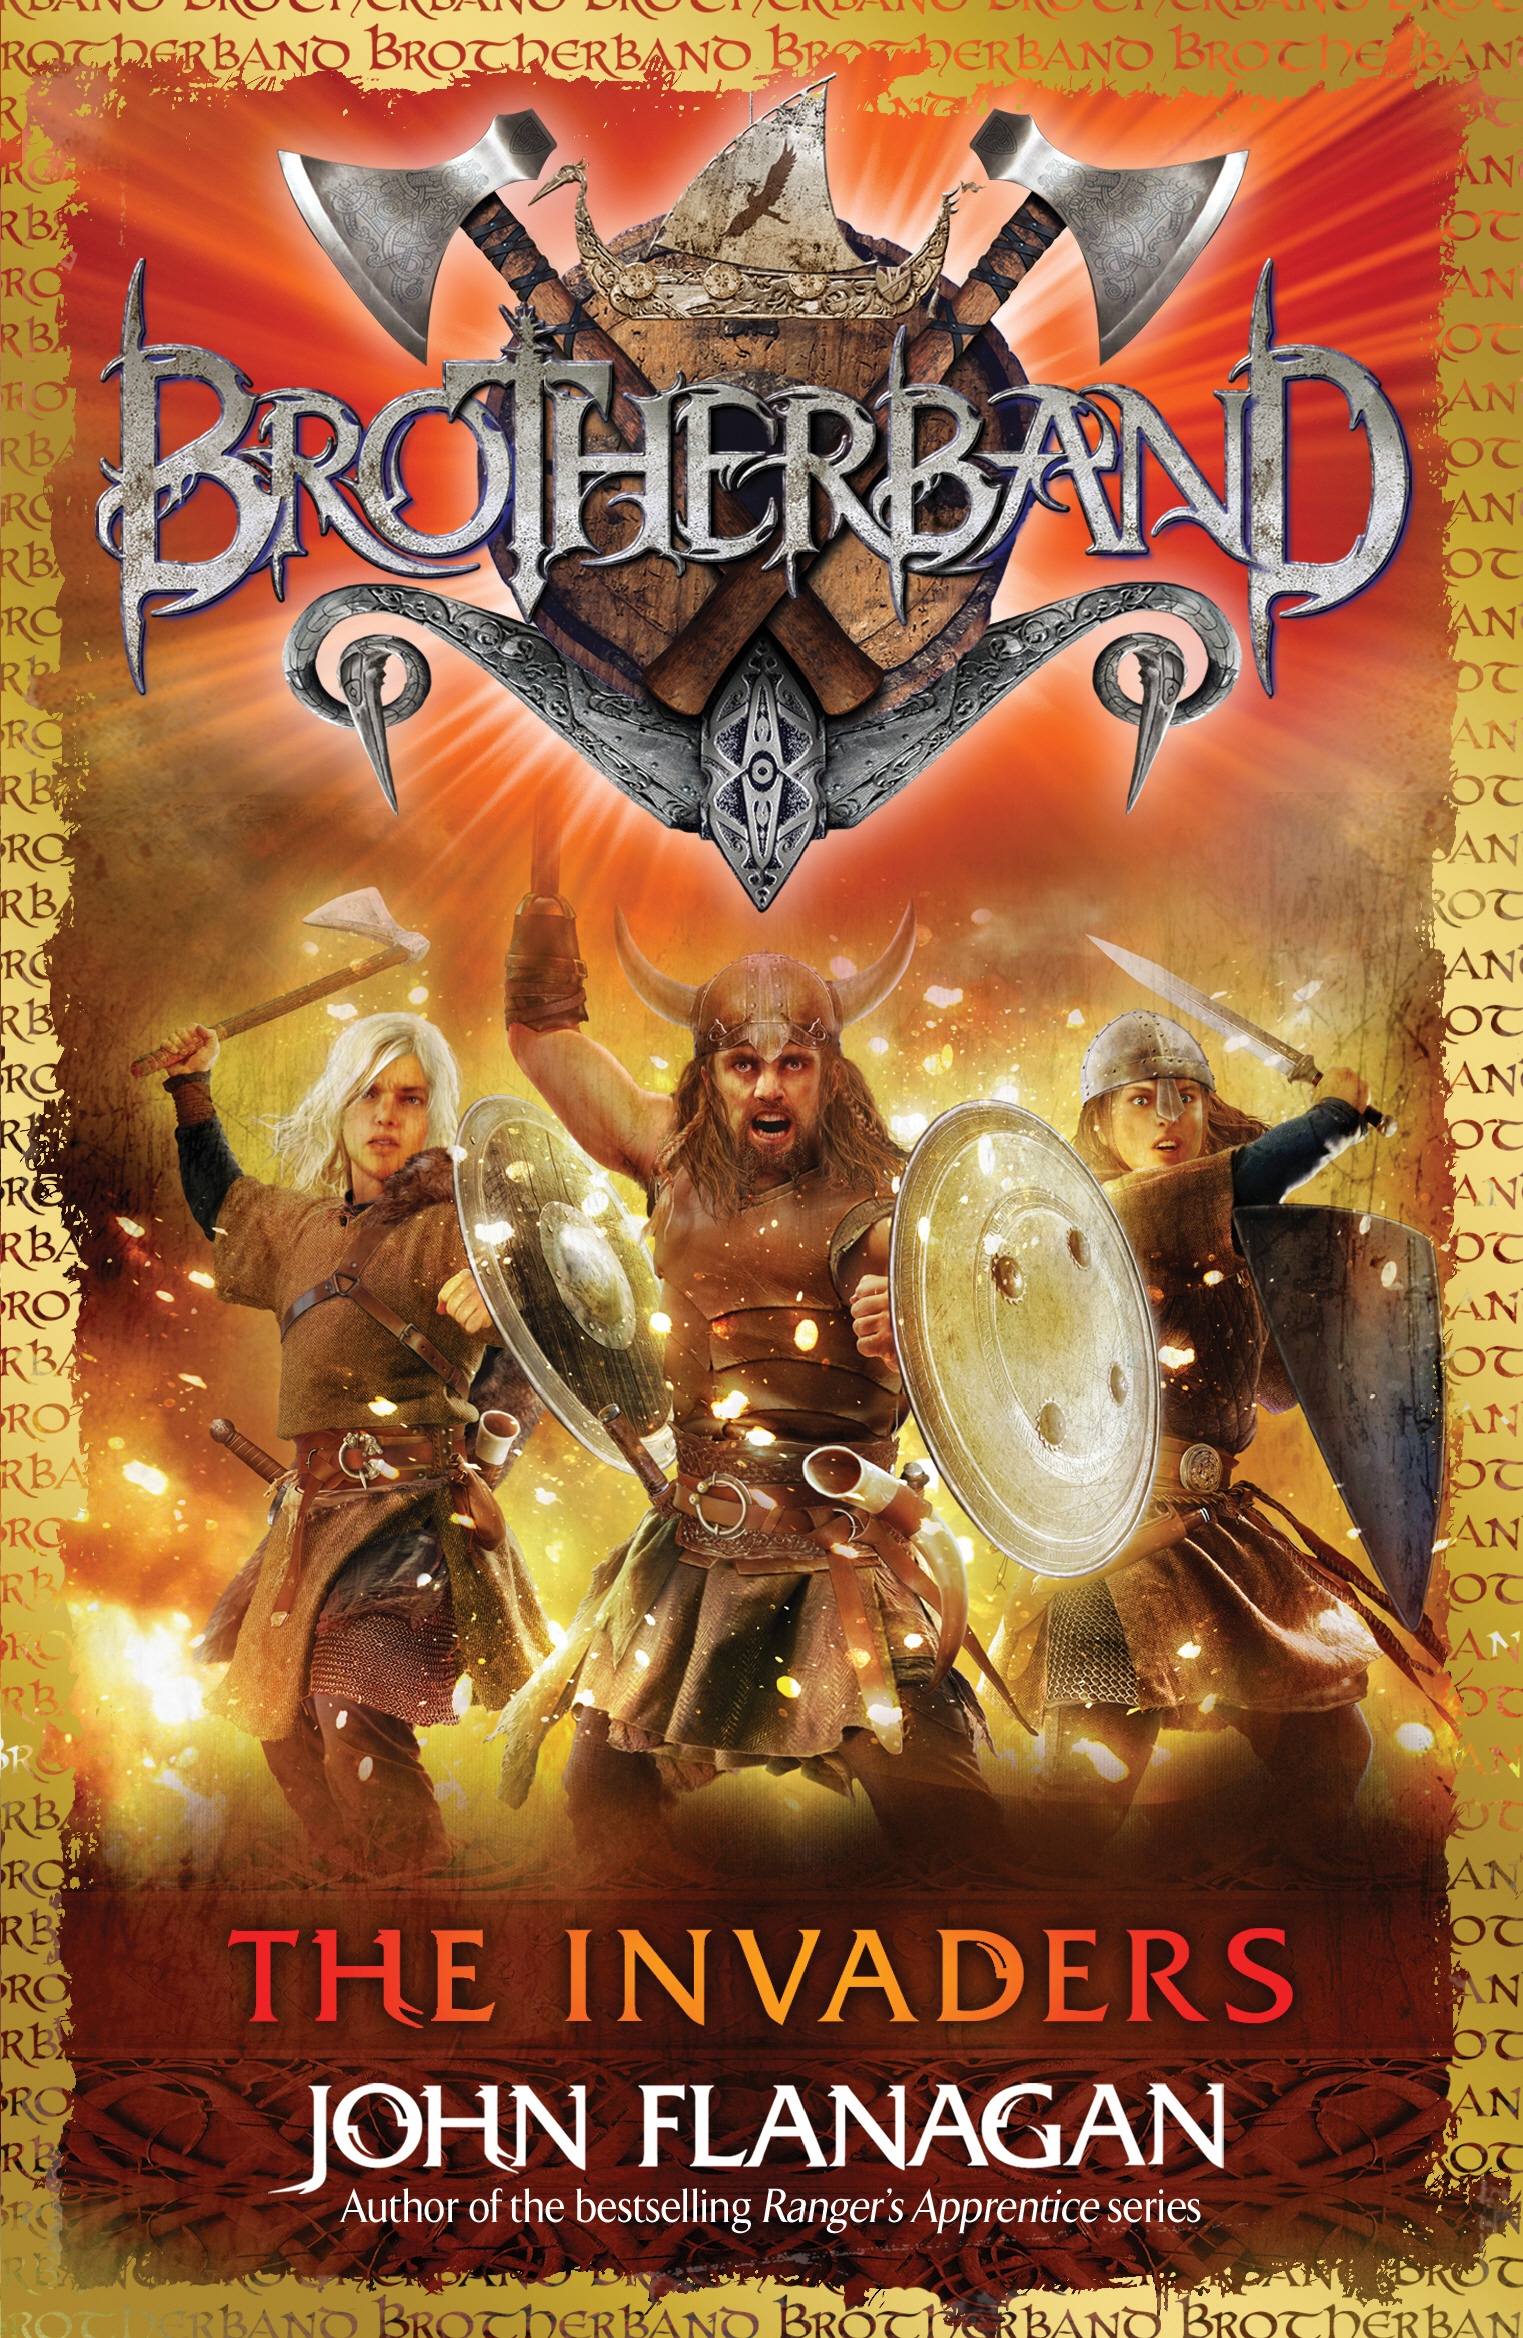 Brotherband: The Invaders Book Two